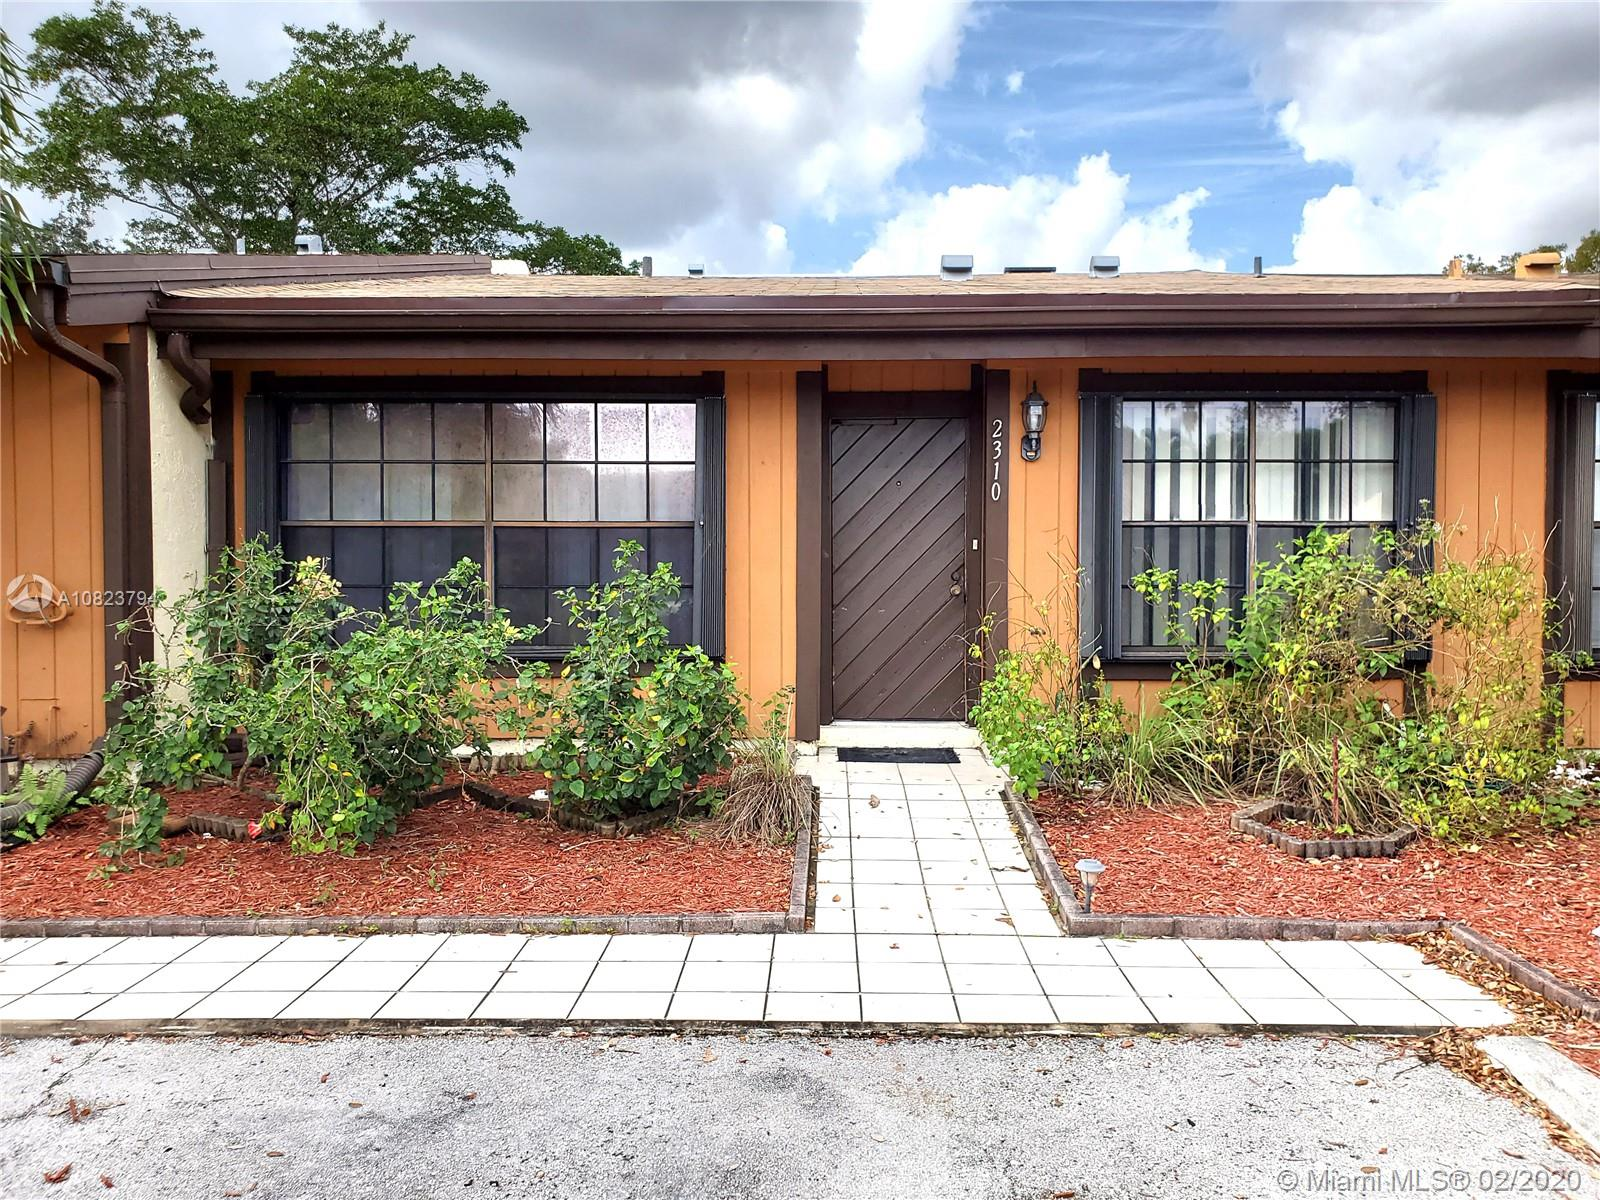 Fixer-Upper in sought after Cedarwoods at Pembroke Lakes Townhomes. Roof recently replaced with permits. Needs TLC to replace bathrooms and kitchen. Cedarwoods has low HOA maintenance fee. High wood ceiling. Two designated parking spaces in front of the unit and guest parking nearby. Accordion hurricane shutters. Roof replaced in November 2019. Centrally located. Broker is a party to the Seller. Rental after two years of ownership.